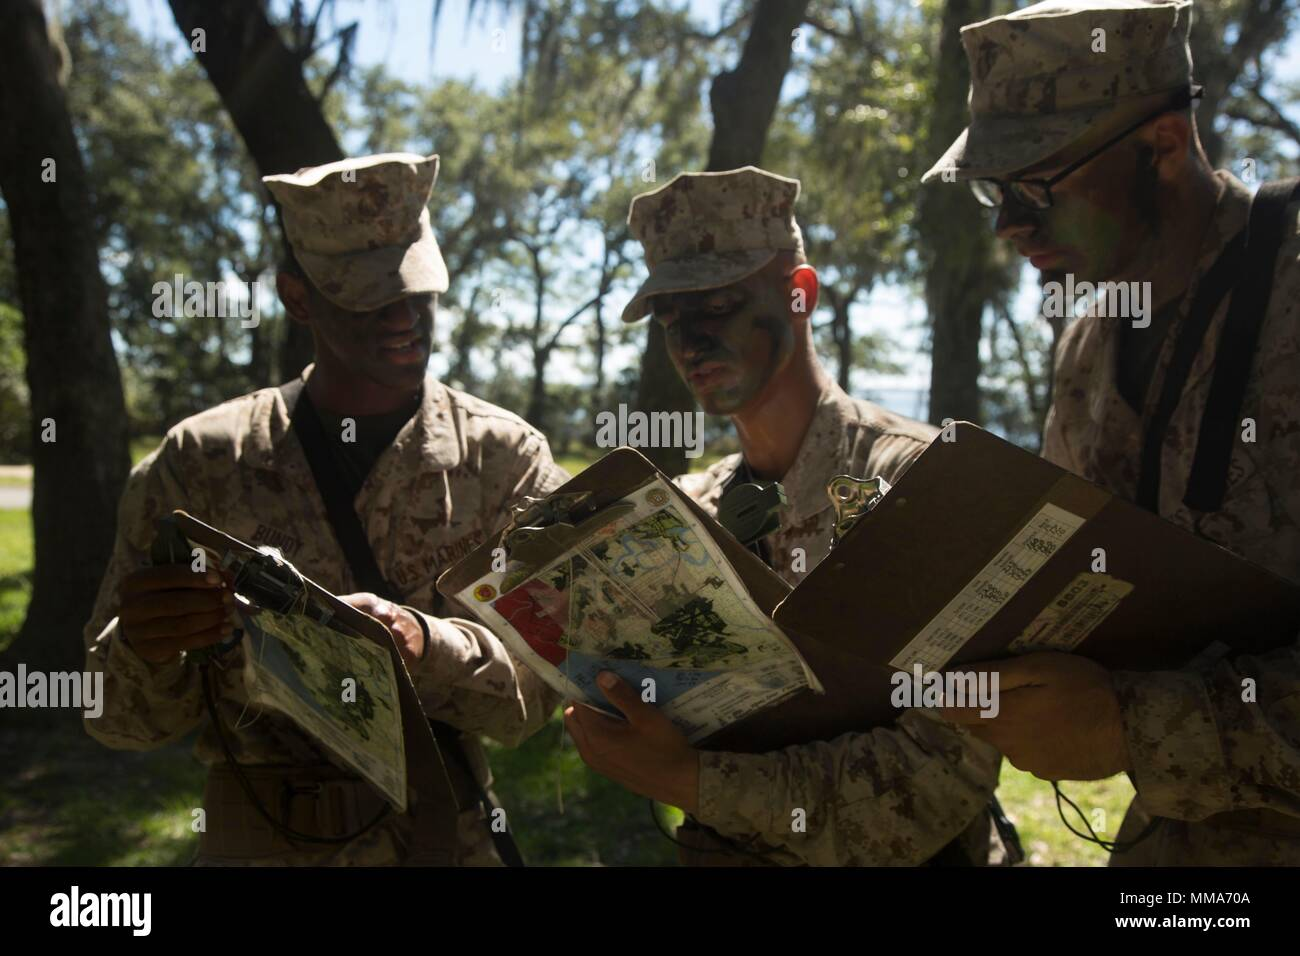 U.S. Marine Corps Recruits with Delta Company, 1st Battalion, Recruit Training Regiment, record their plot points at Elliot's Beach on Marine Corps Recruit Depot, Parris Island, S.C., Sept. 25, 2017.  The Land Navigation Course teaches recruits how to properly navigate unfamiliar terrain.  (U.S. Marine Corps photo by Lance Cpl. Yamil Casarreal/Released) Stock Photo